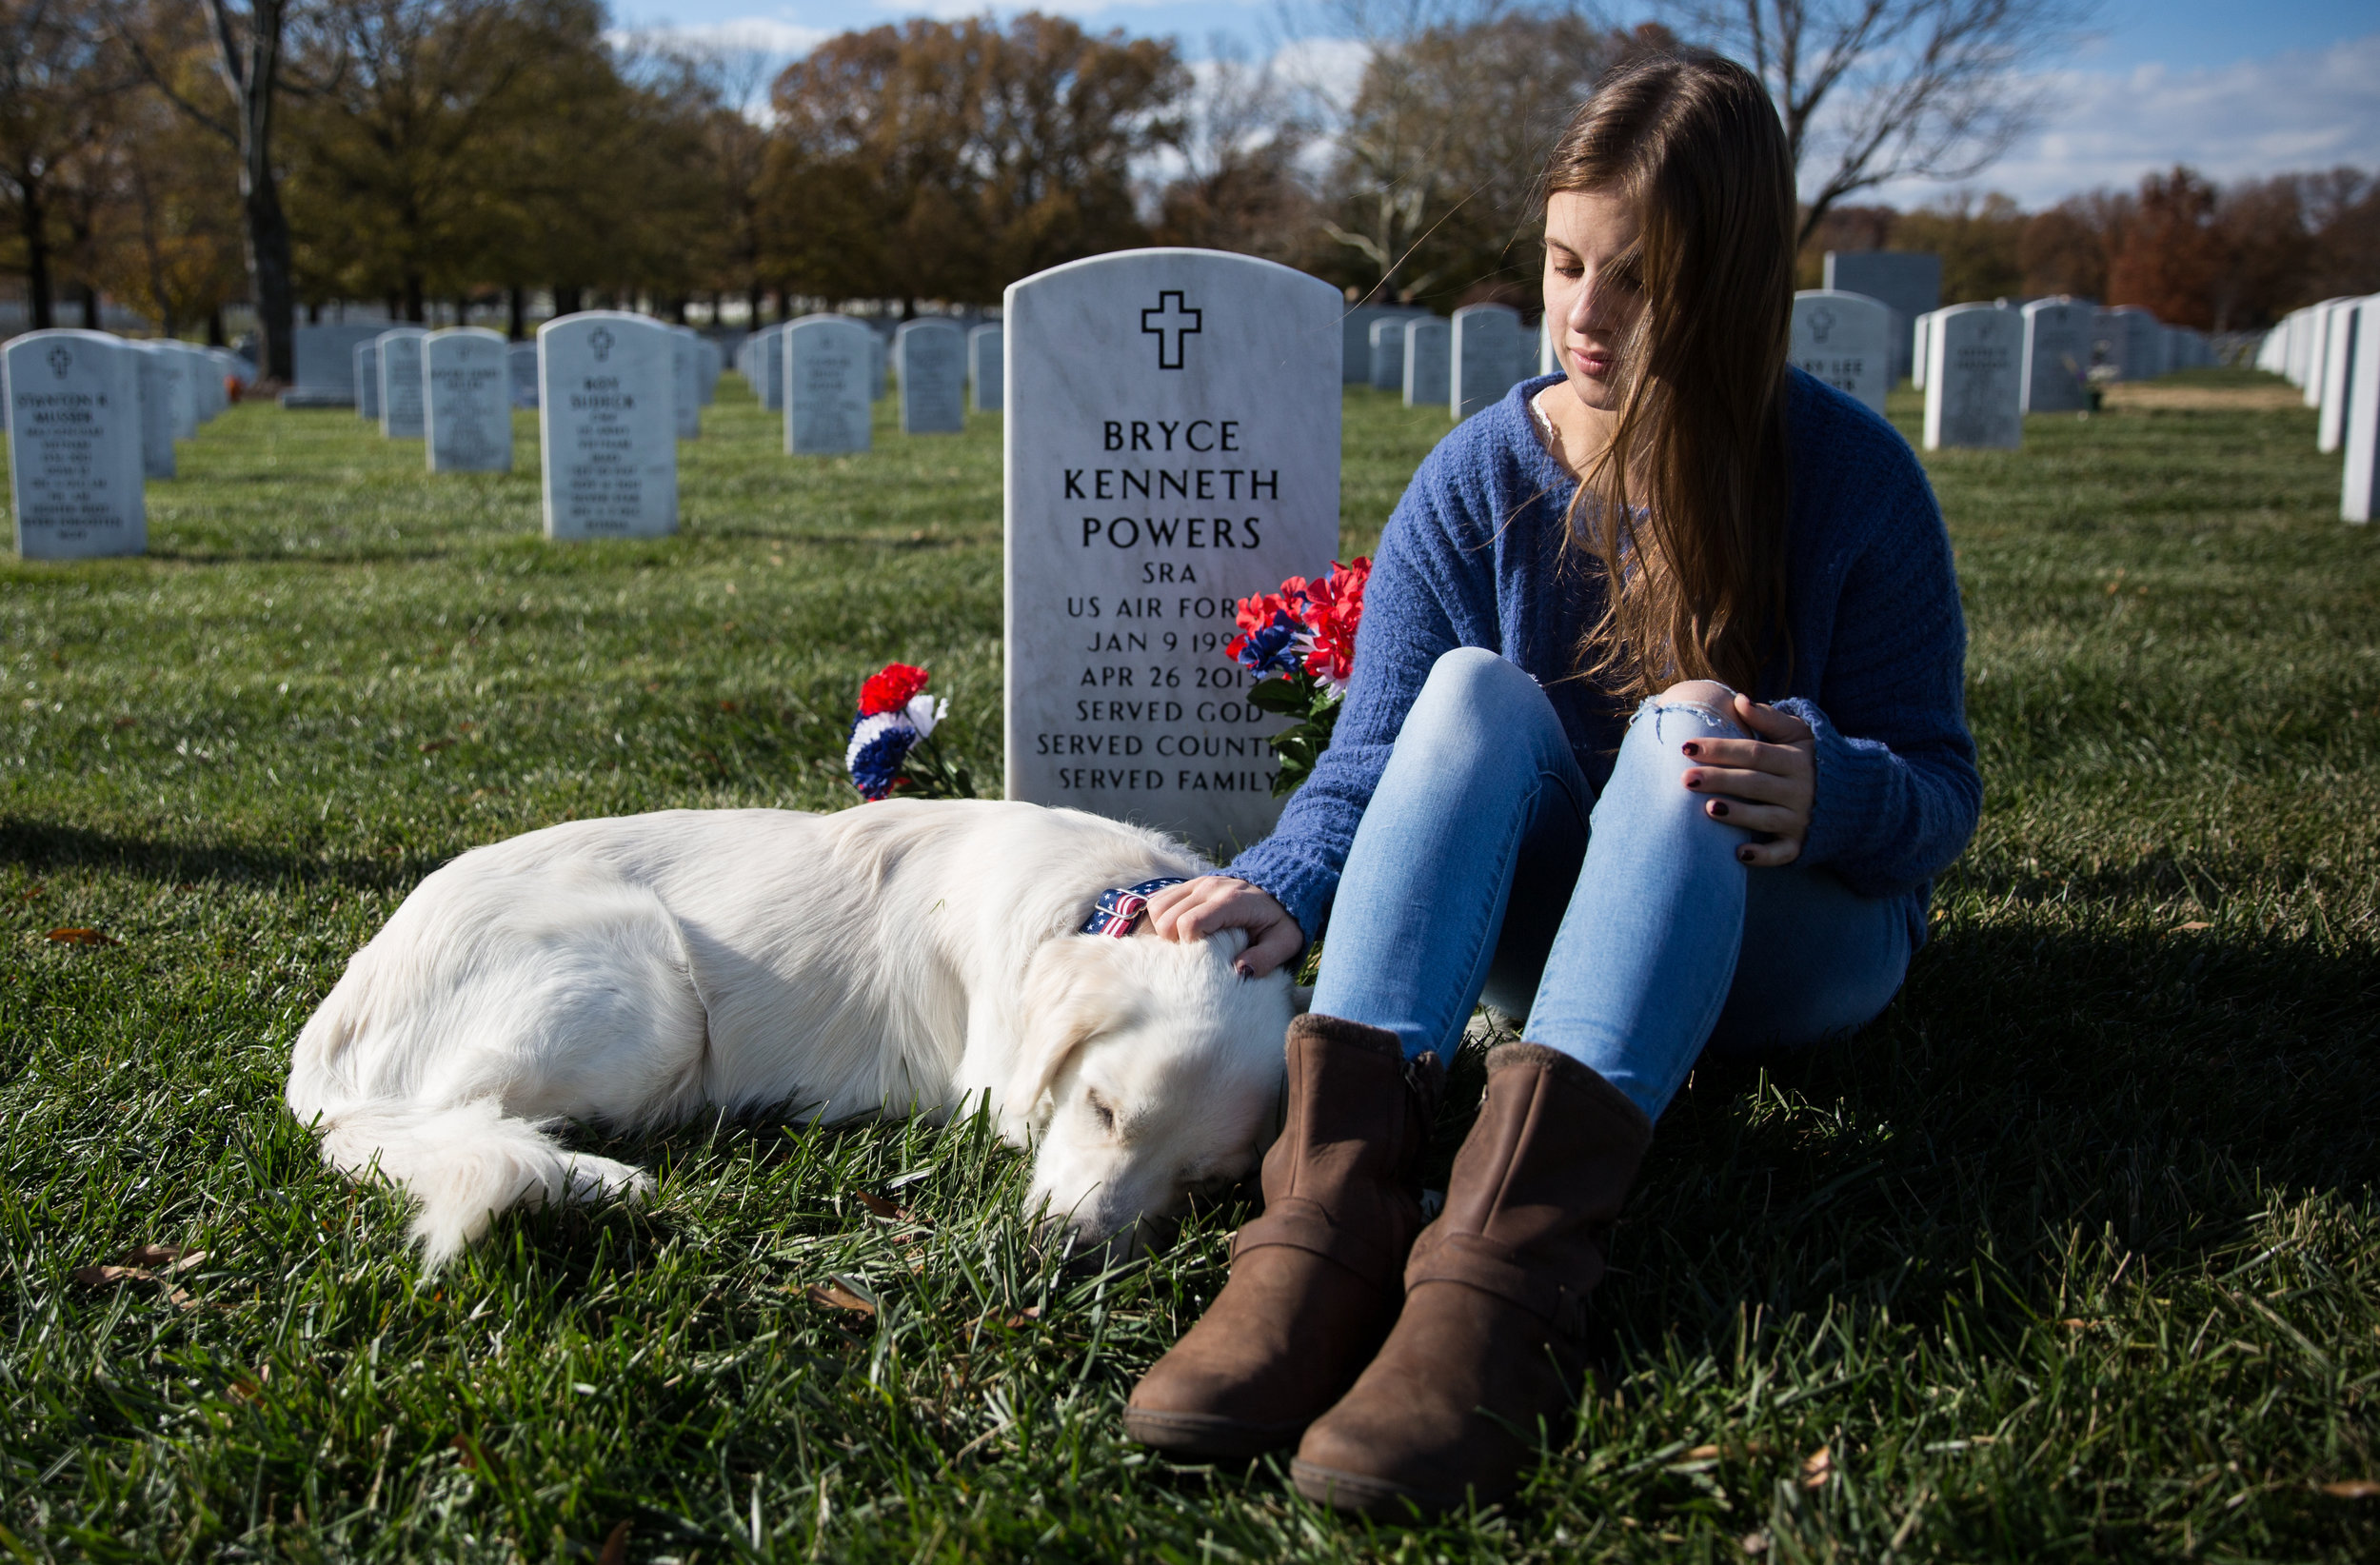 Madi Powers sits near the grave of her brother, Senior Airman Bryce Powers at Arlington National Cemetery. SRA Powers died in 2013 as the result of a car crash during his deployment in Japan.The dog is a service dog named after her brother who is being trained by her to support veterans with PTSD. Taken on November 25, 2017.